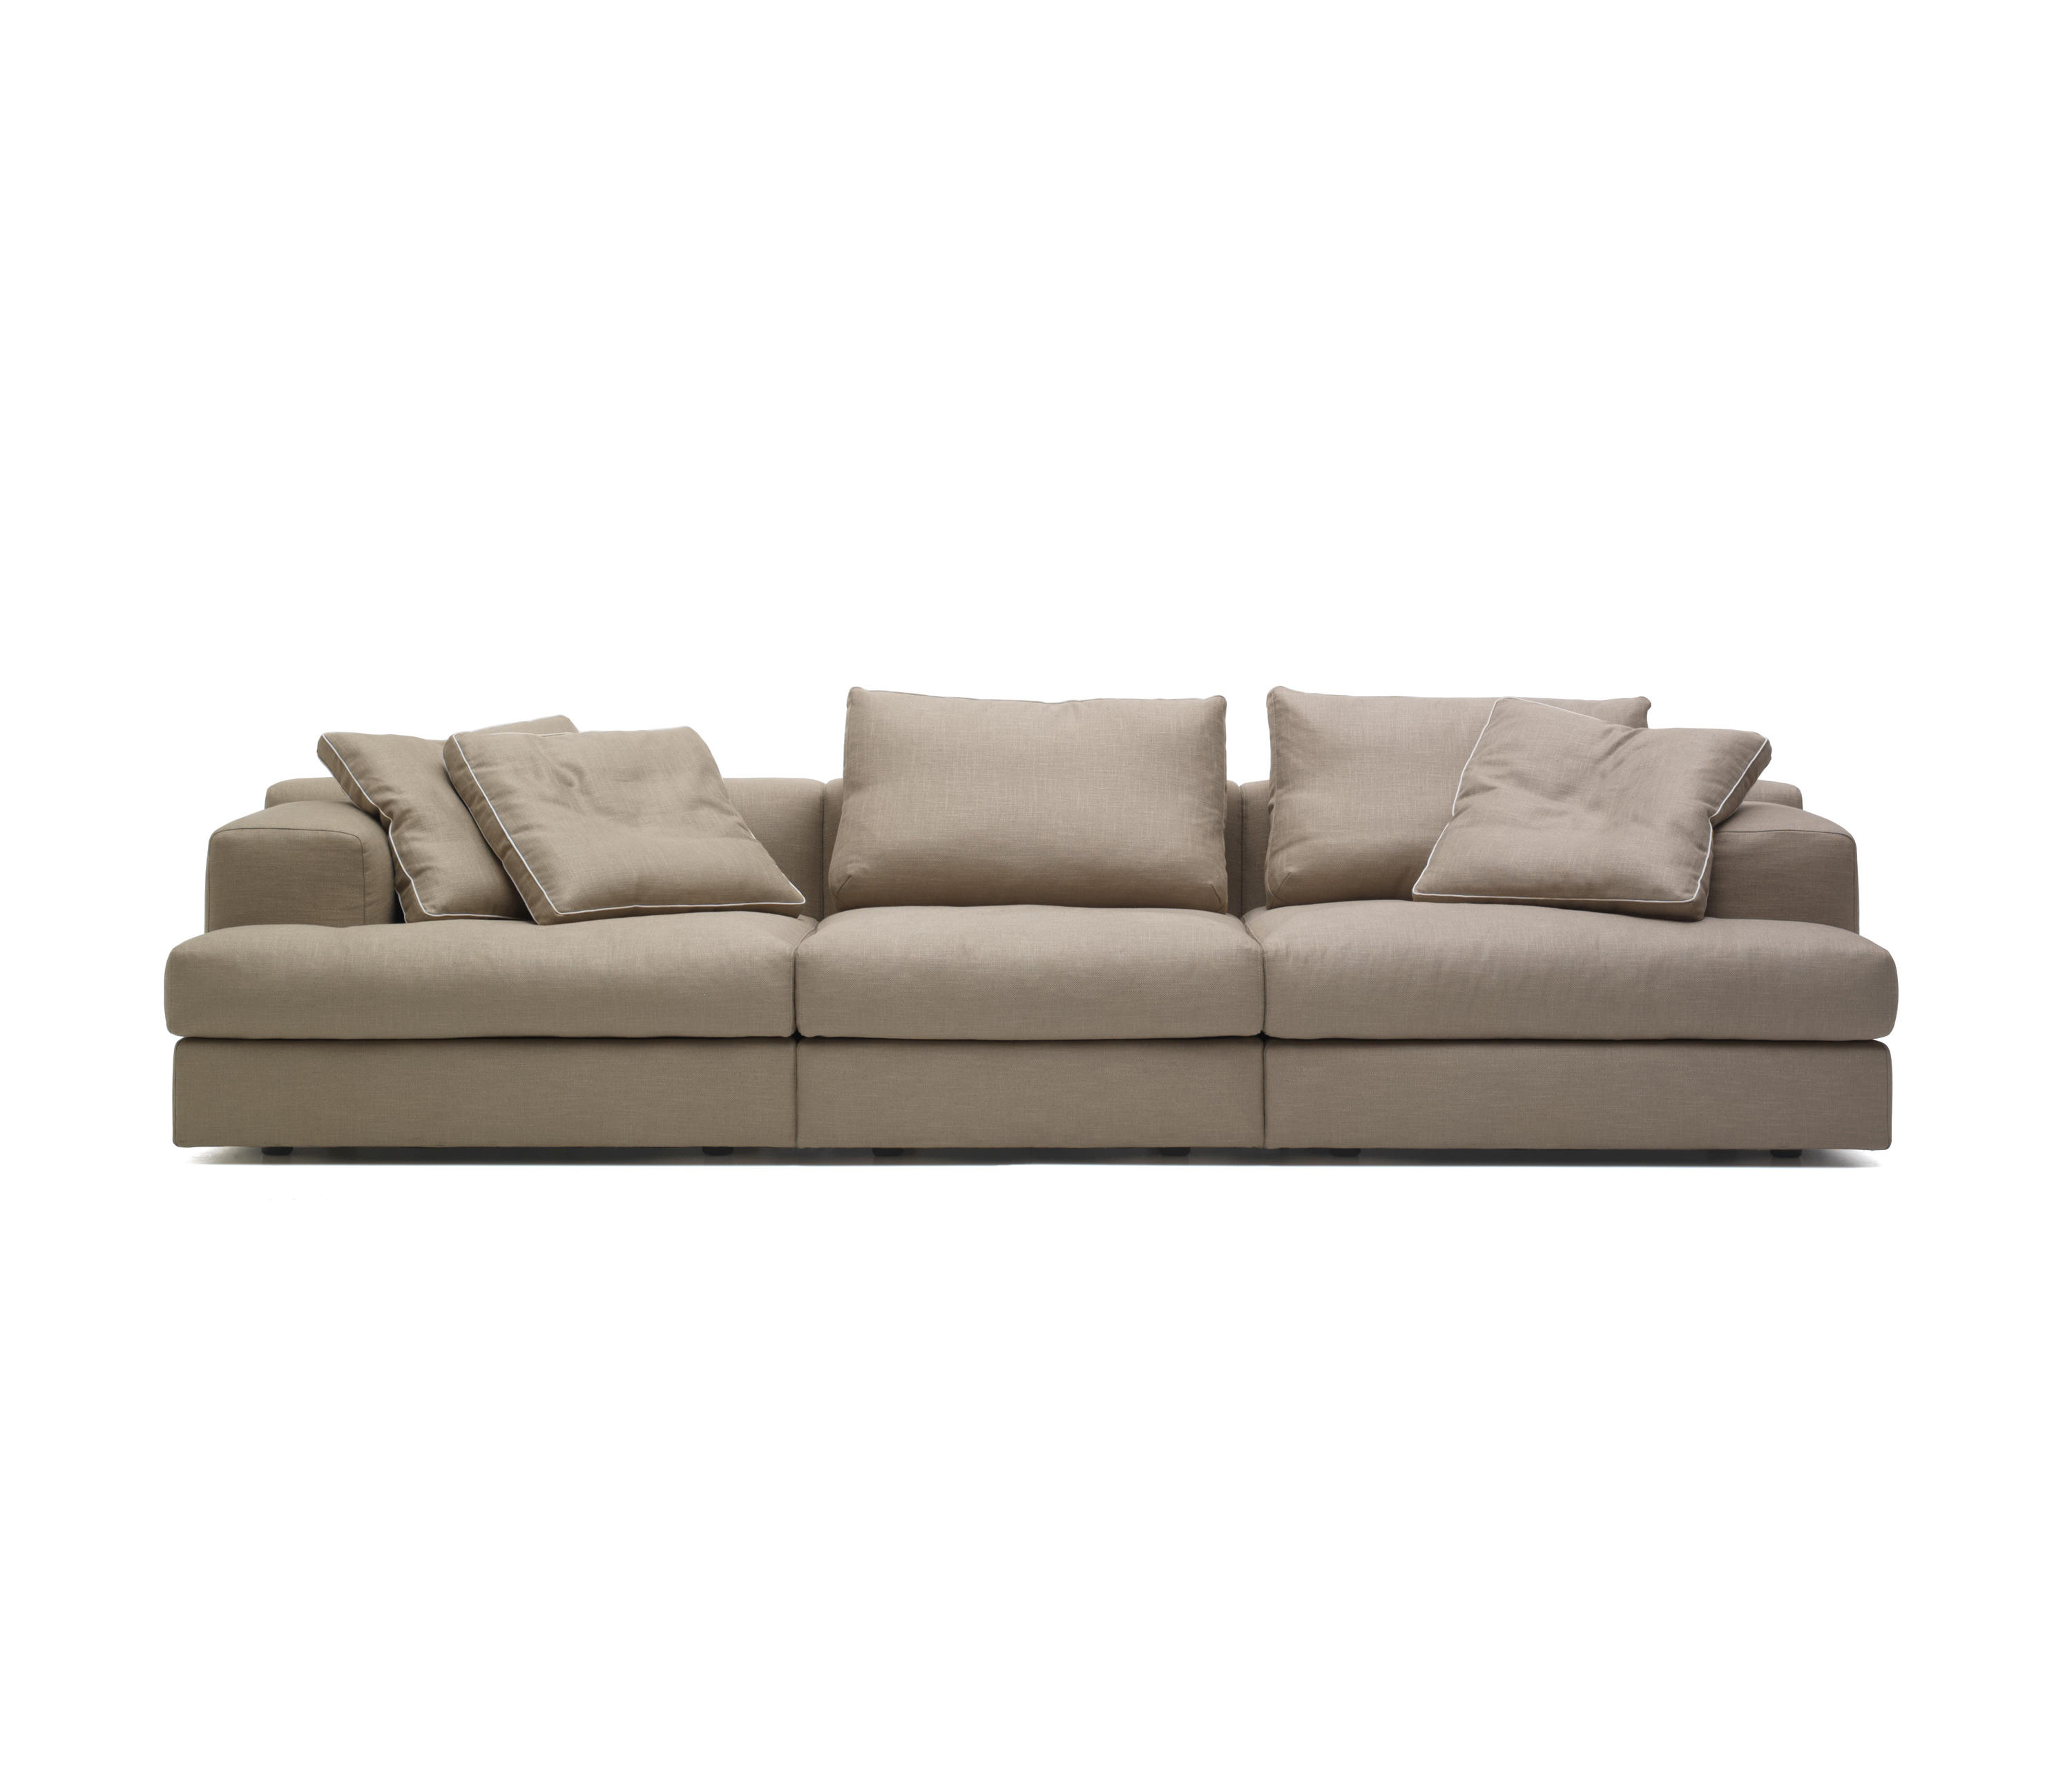 Piero Lissoni Sofa Price 193 Miloe - Sofas From Cassina | Architonic